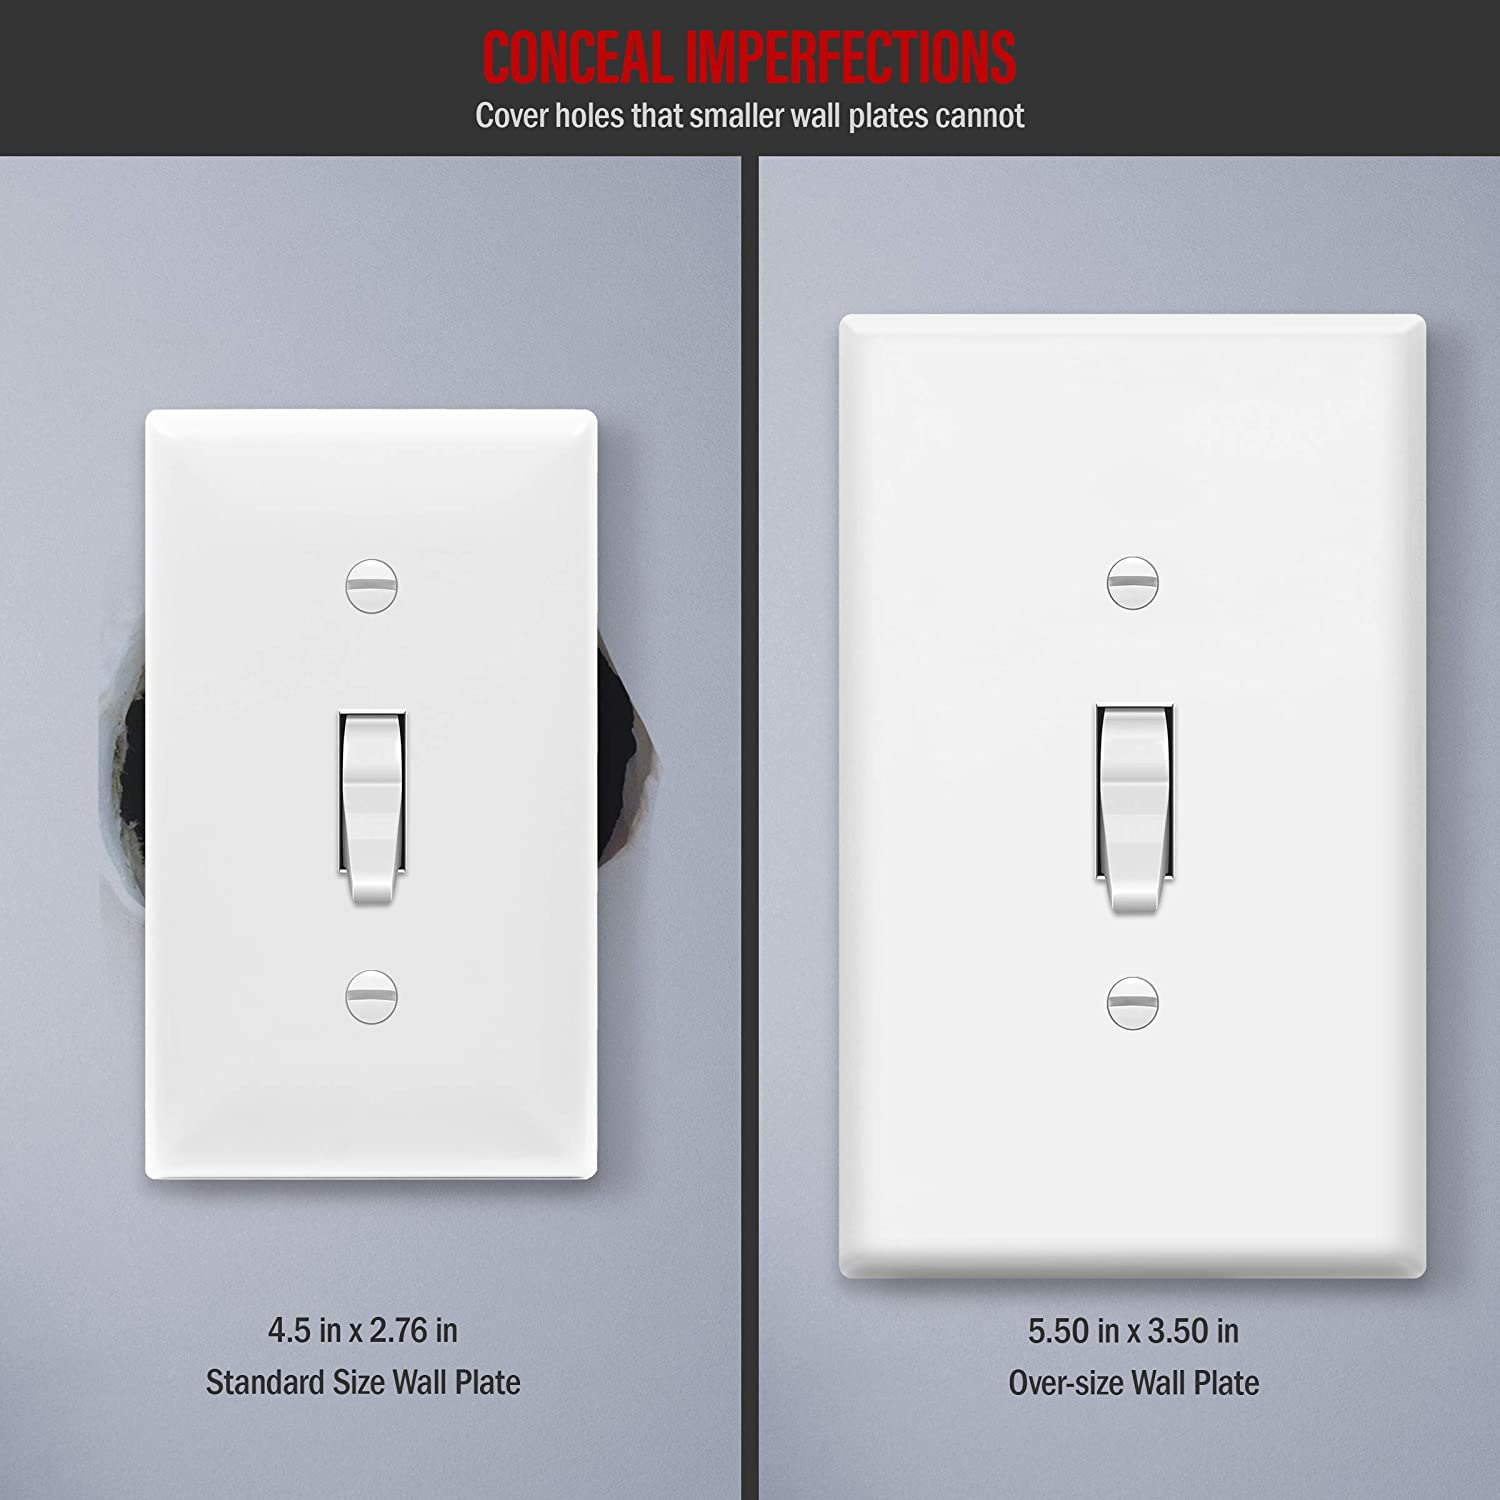 1 X Vynco Vertical Wall Light Switch Outlet 5 FIVE Gang Cover Plate GPO USB